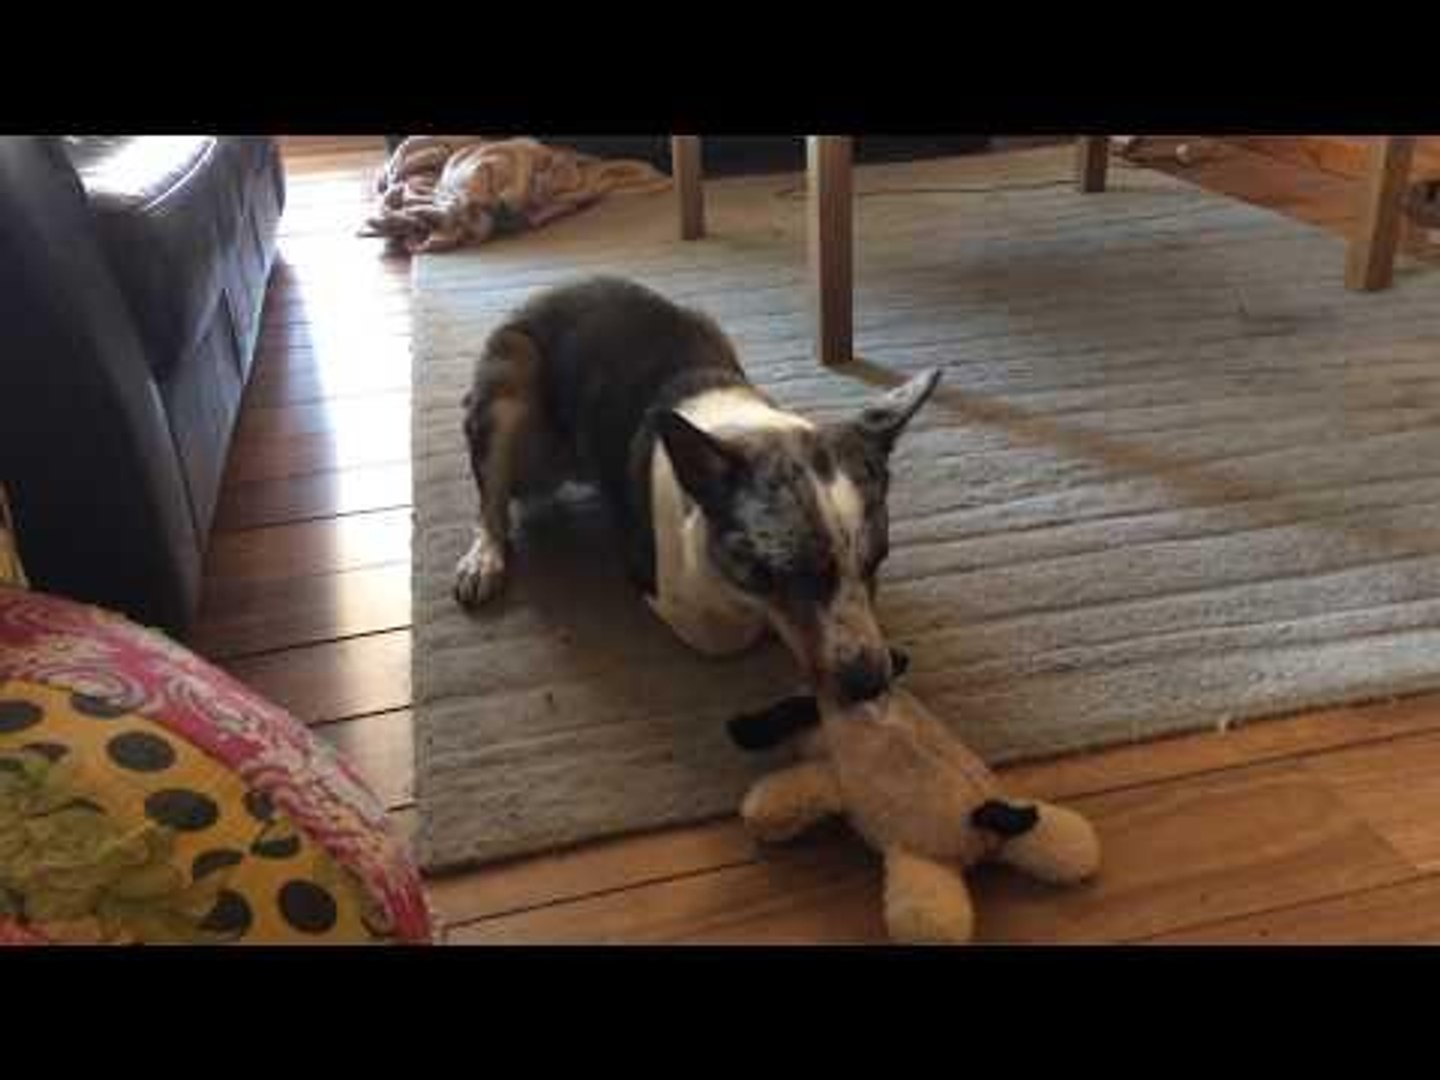 Dog With Amputated Front Legs Plays Around Joyfully With Toy